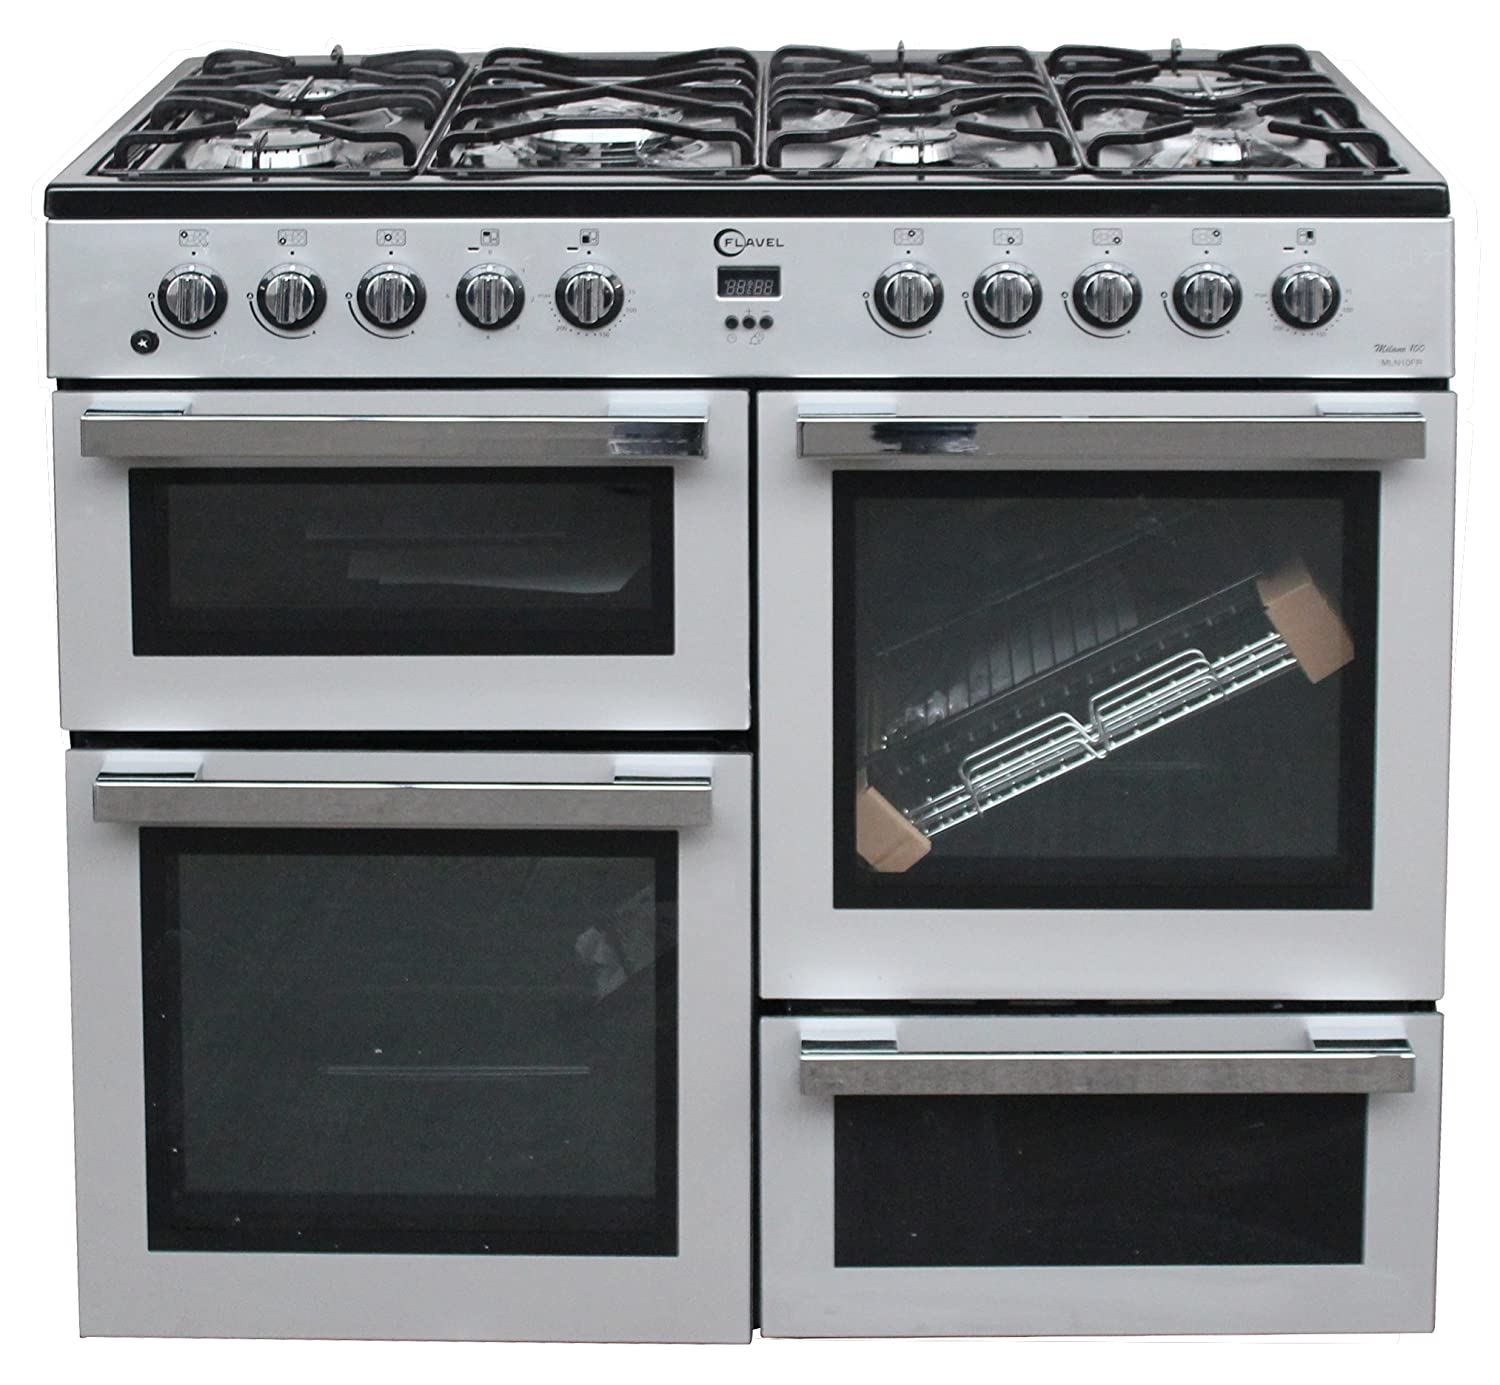 flavel mln10frs 100cm range cooker silver amazon co uk large